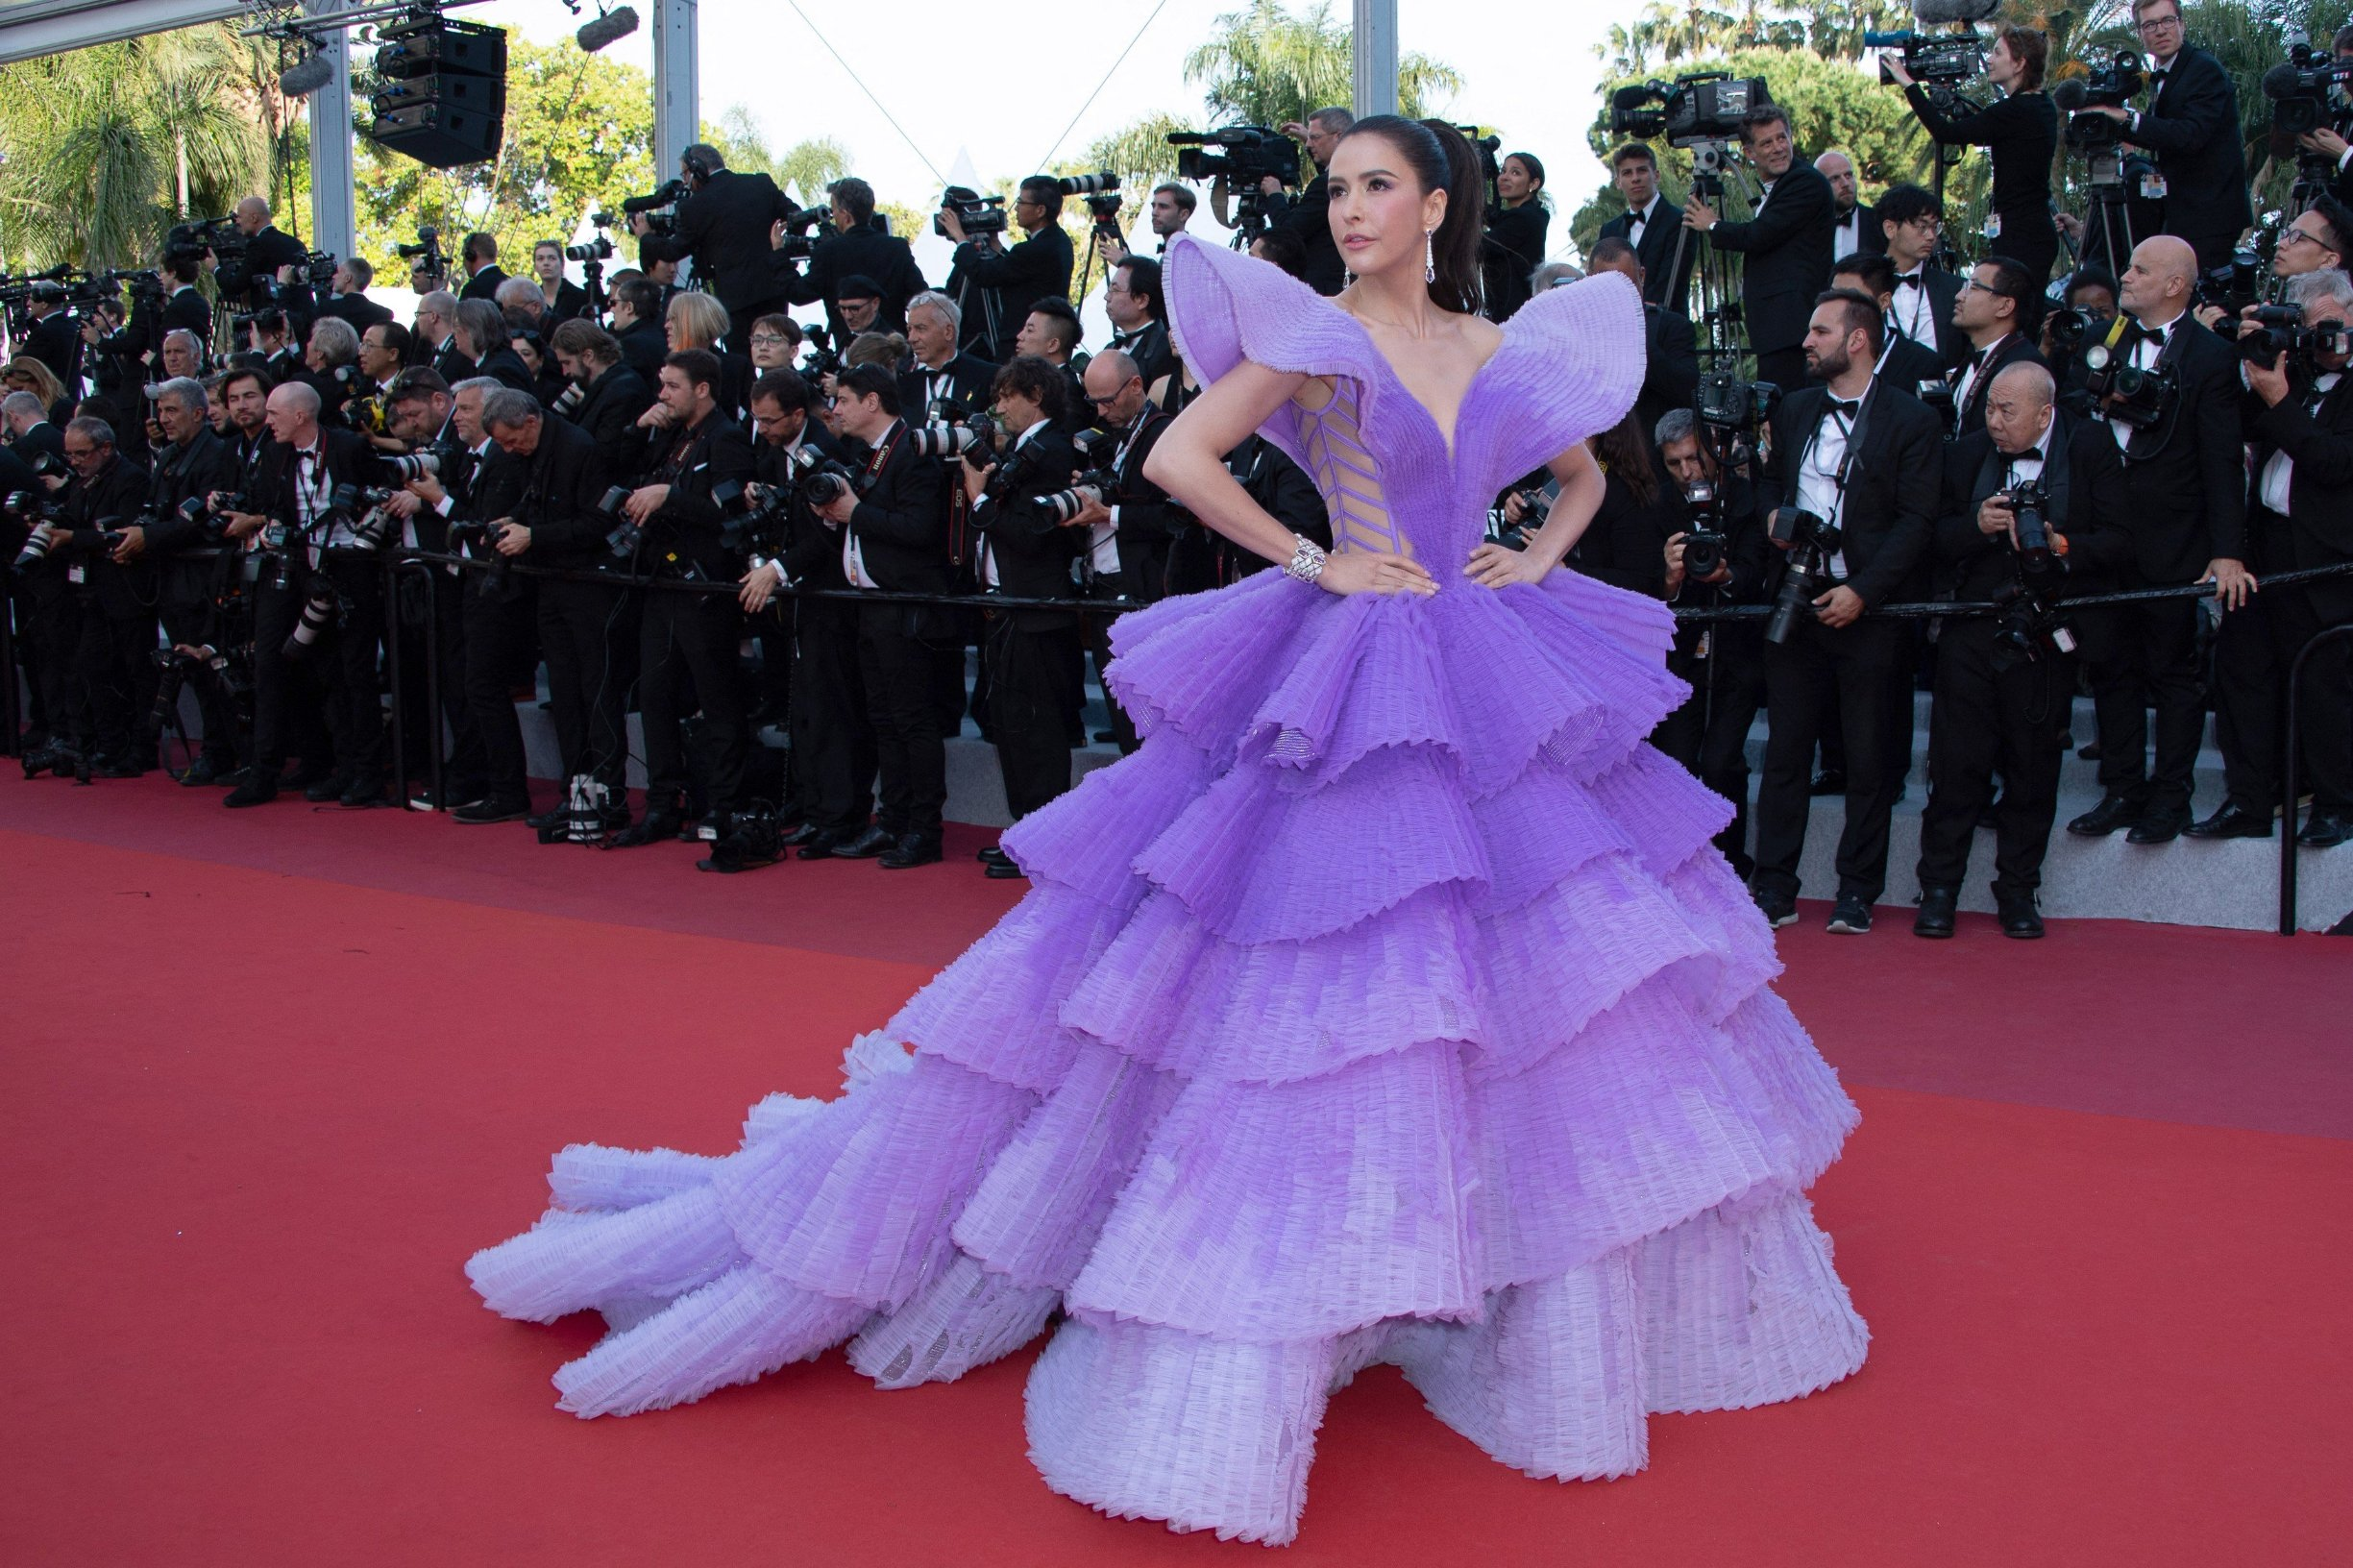 Sririta Jensen attending the Rocketman Premiere as part of the 72nd Cannes International Film Festival in Cannes, France on May 16, 2019., Image: 433966125, License: Rights-managed, Restrictions: , Model Release: no, Credit line: Profimedia, Abaca Press